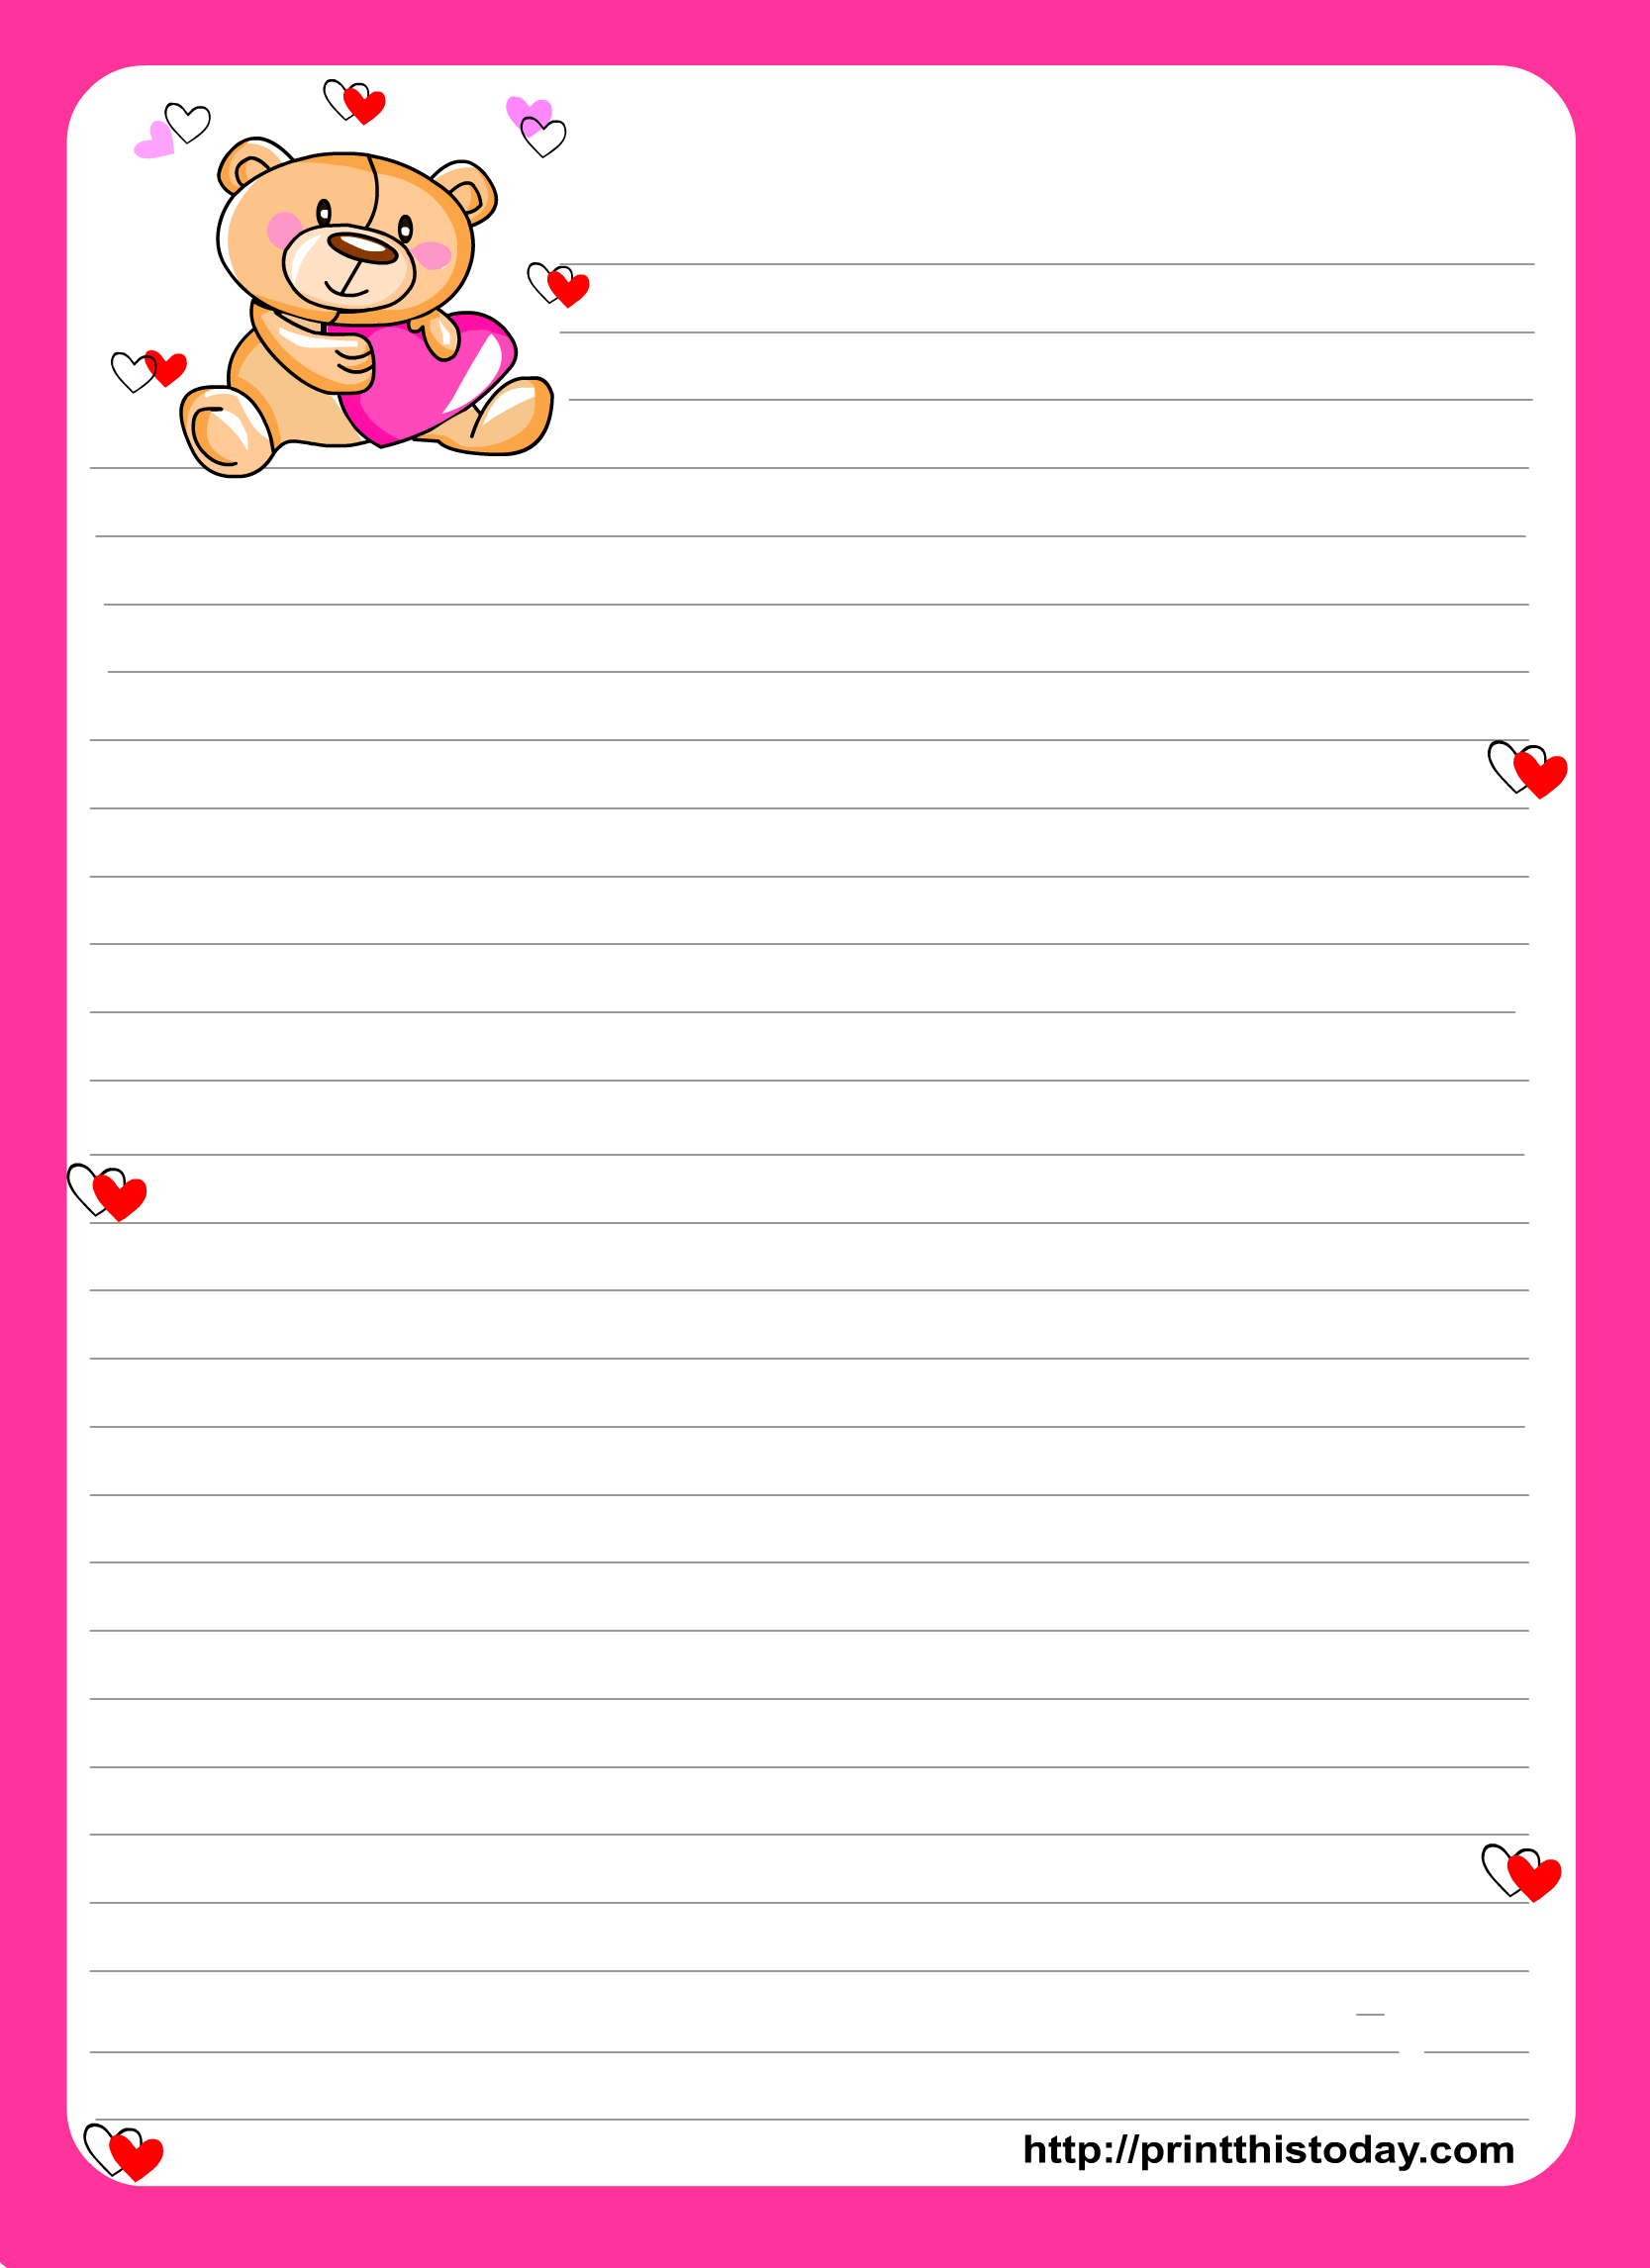 Printable Stationery Paper